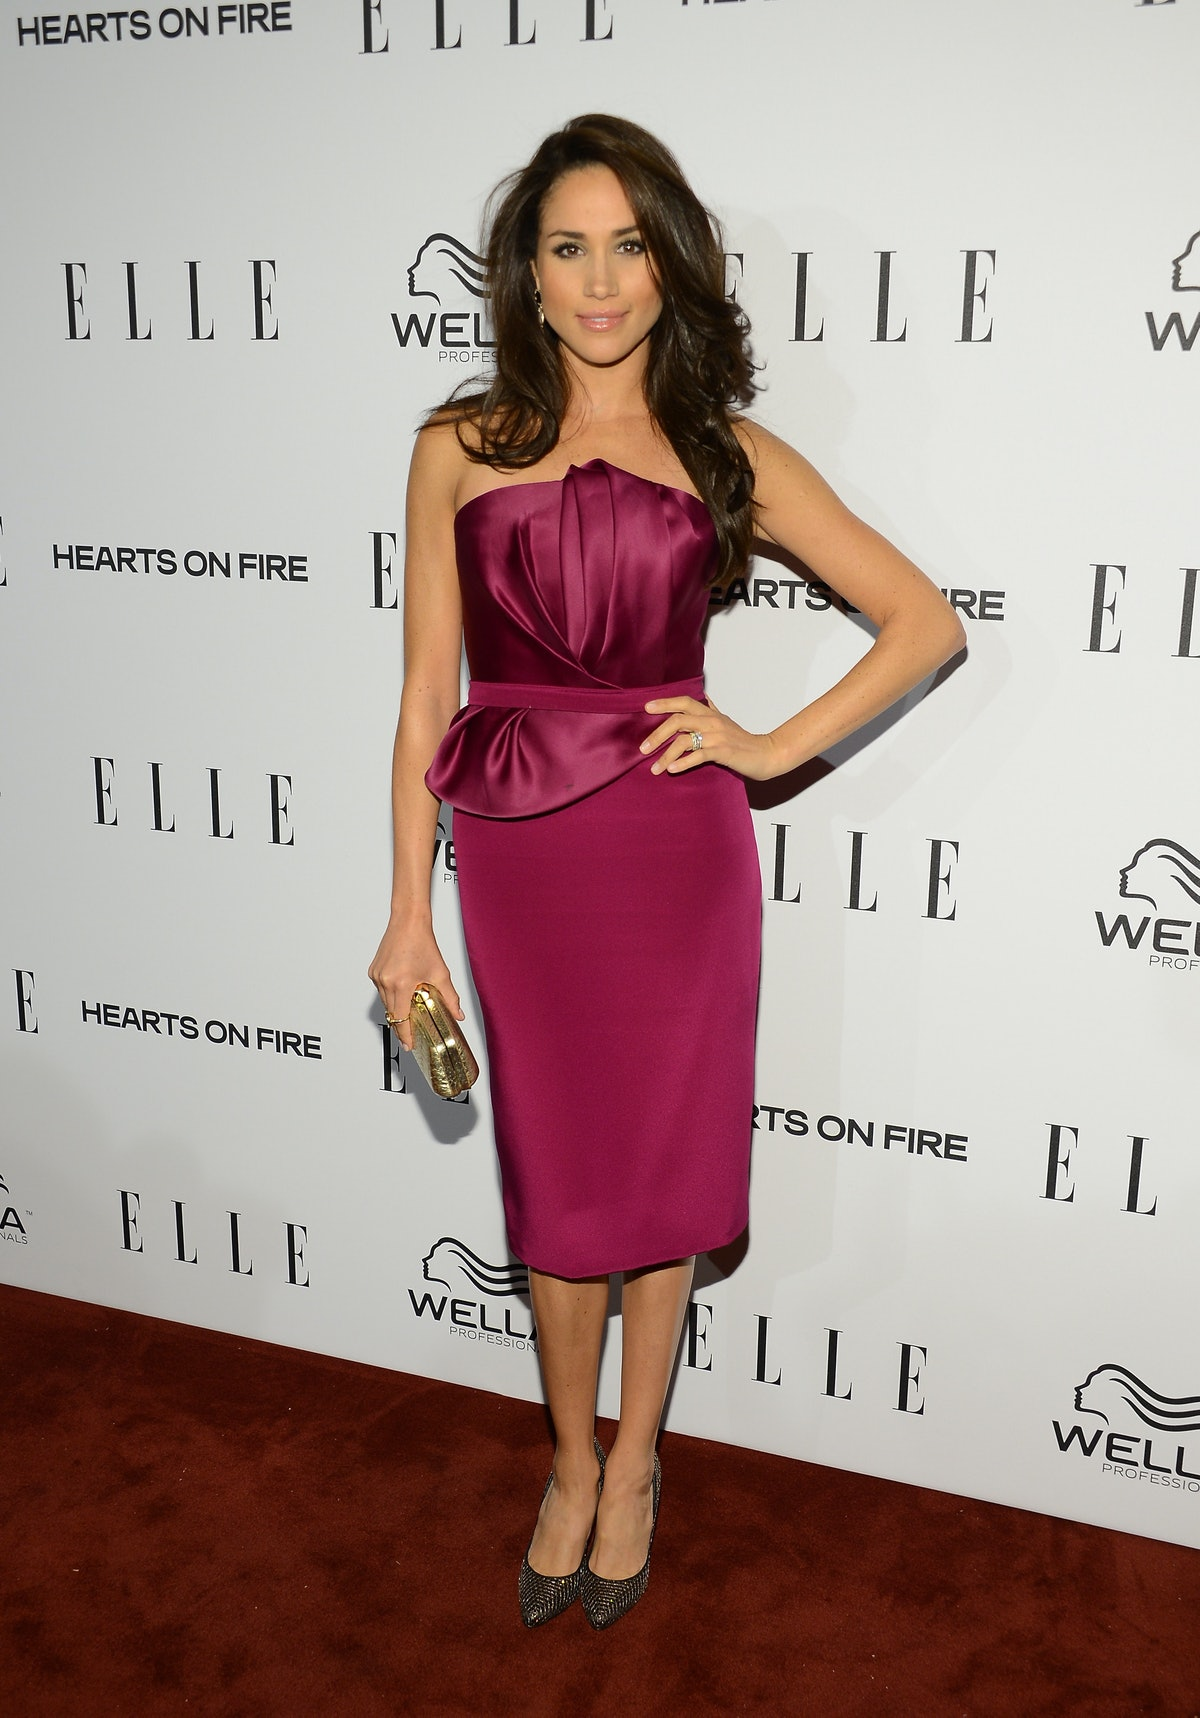 Markle, shown here in a fuschia pencil dress at an Elle event, was serving looks.